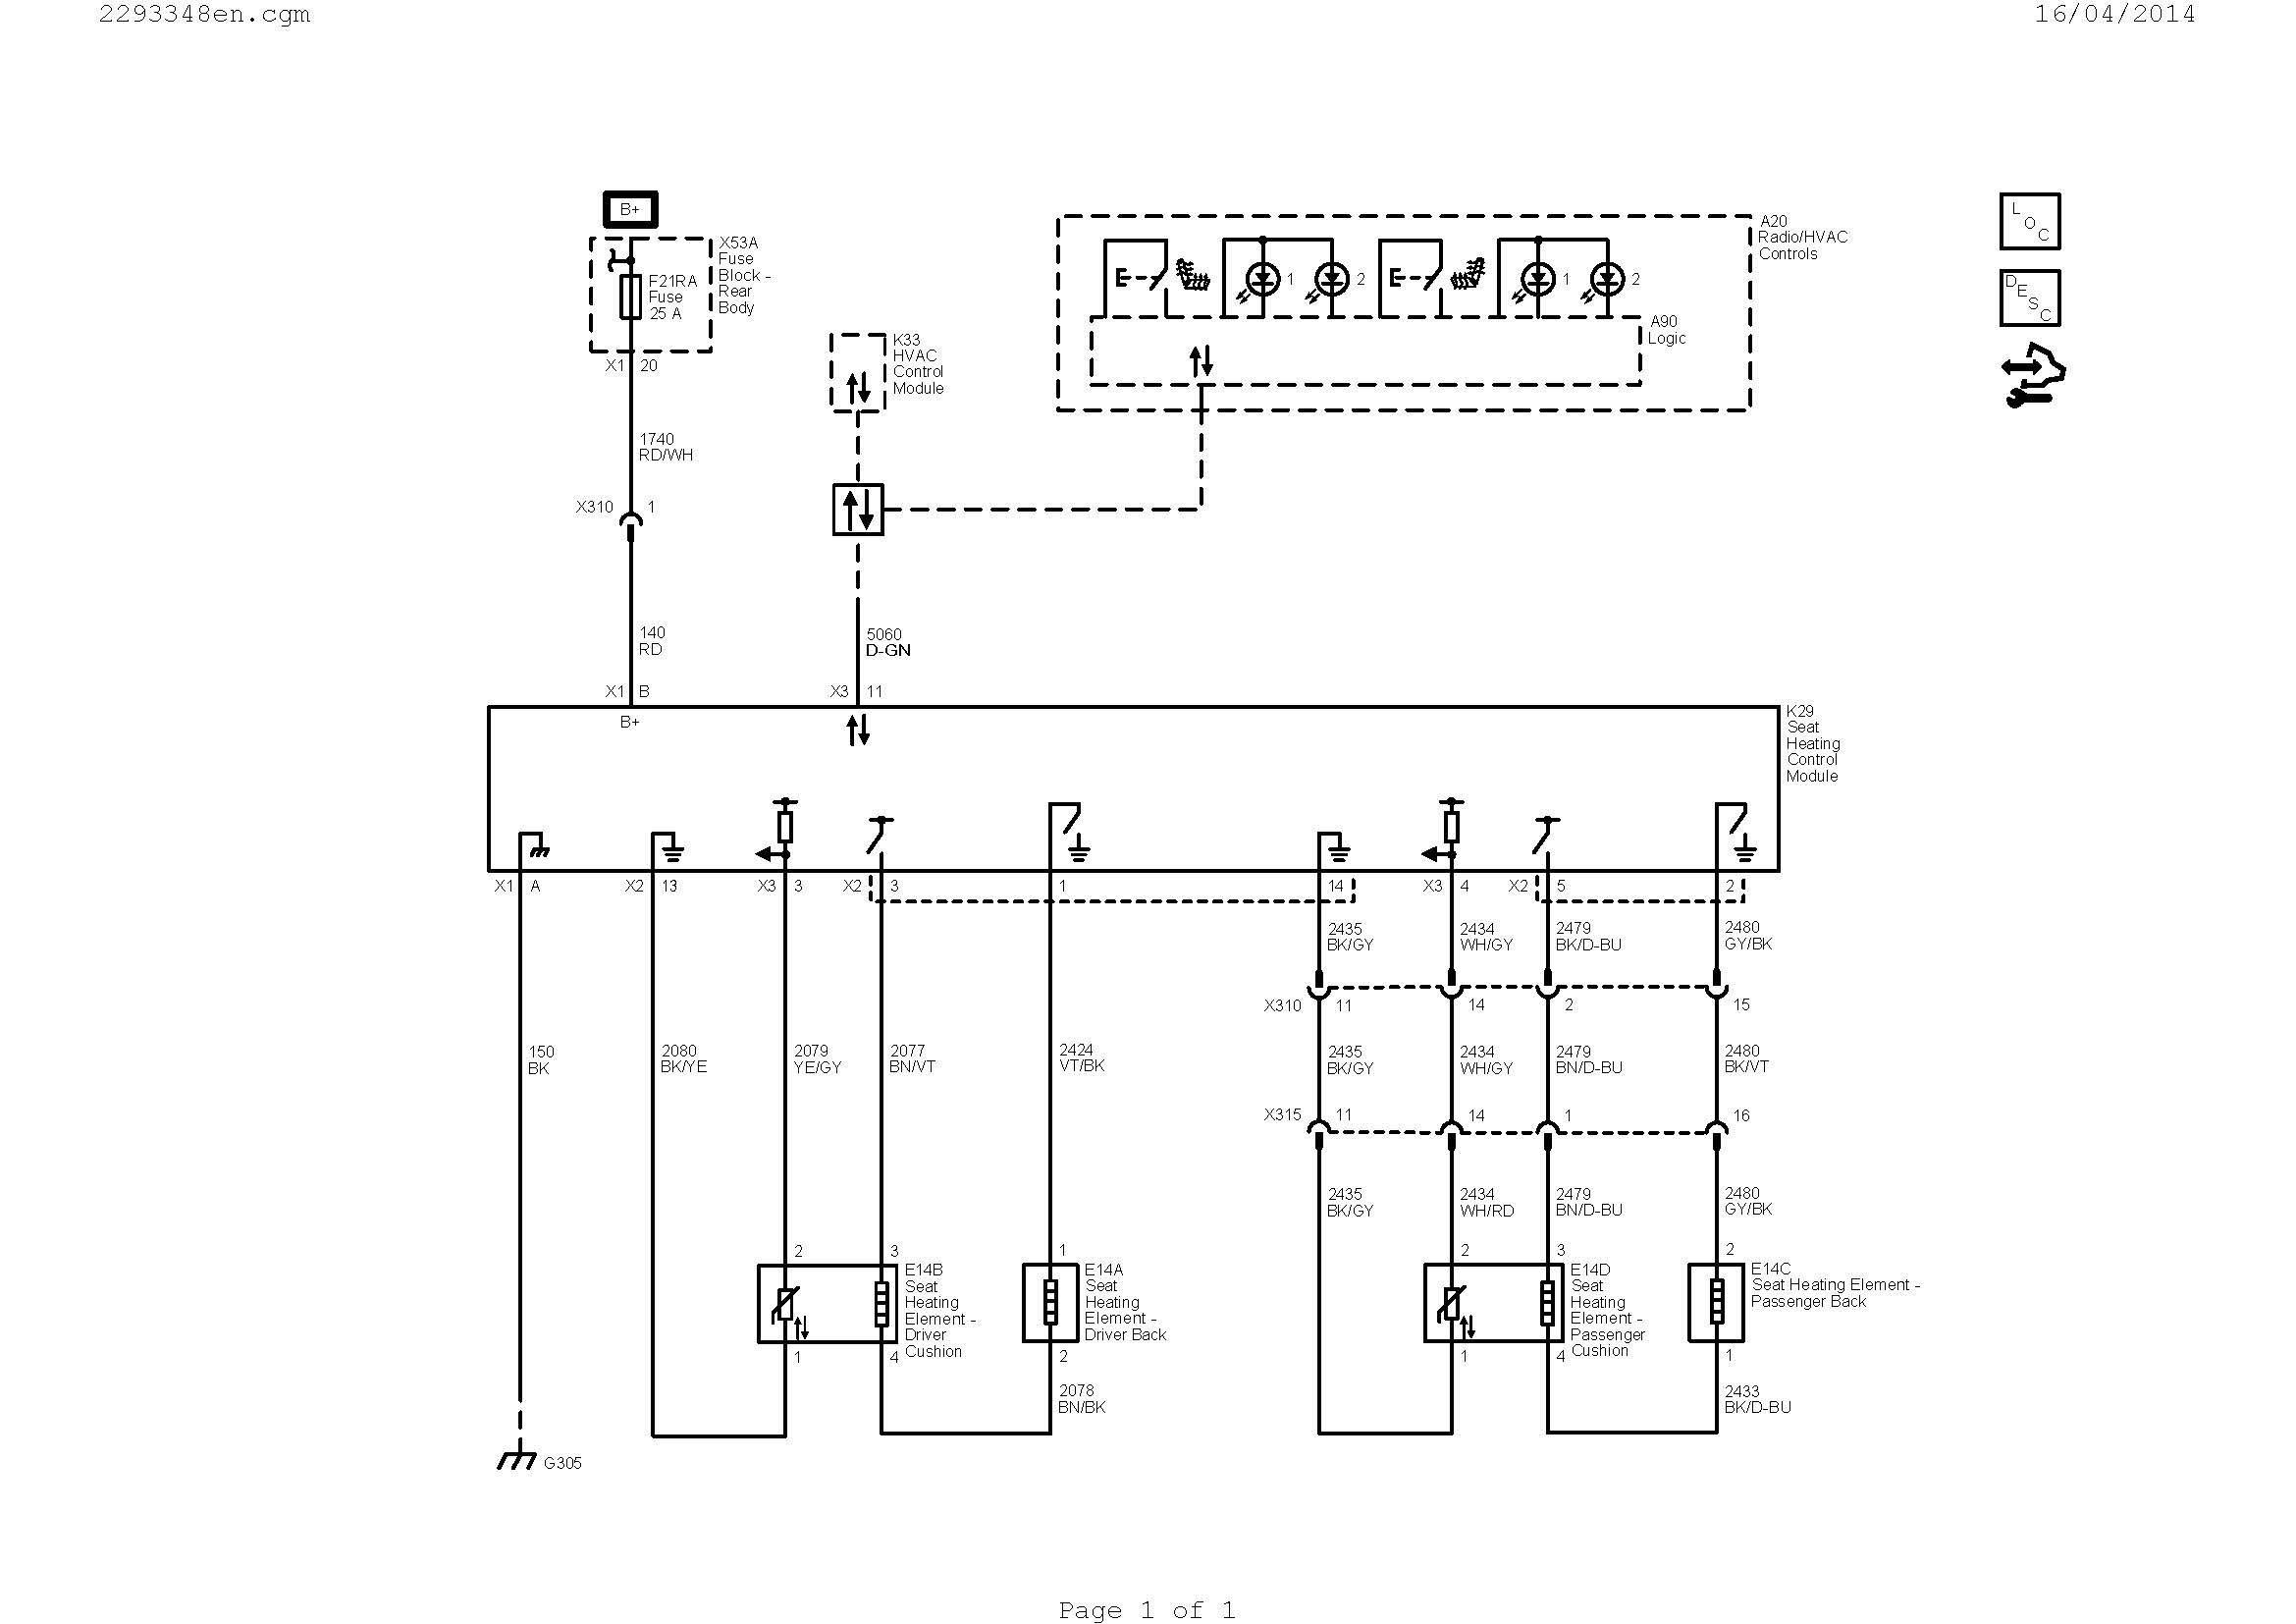 lennox furnace thermostat wiring diagram Download-lennox wiring diagram Download Wiring A Ac Thermostat Diagram New Wiring Diagram Ac Valid Hvac DOWNLOAD Wiring Diagram 10-h